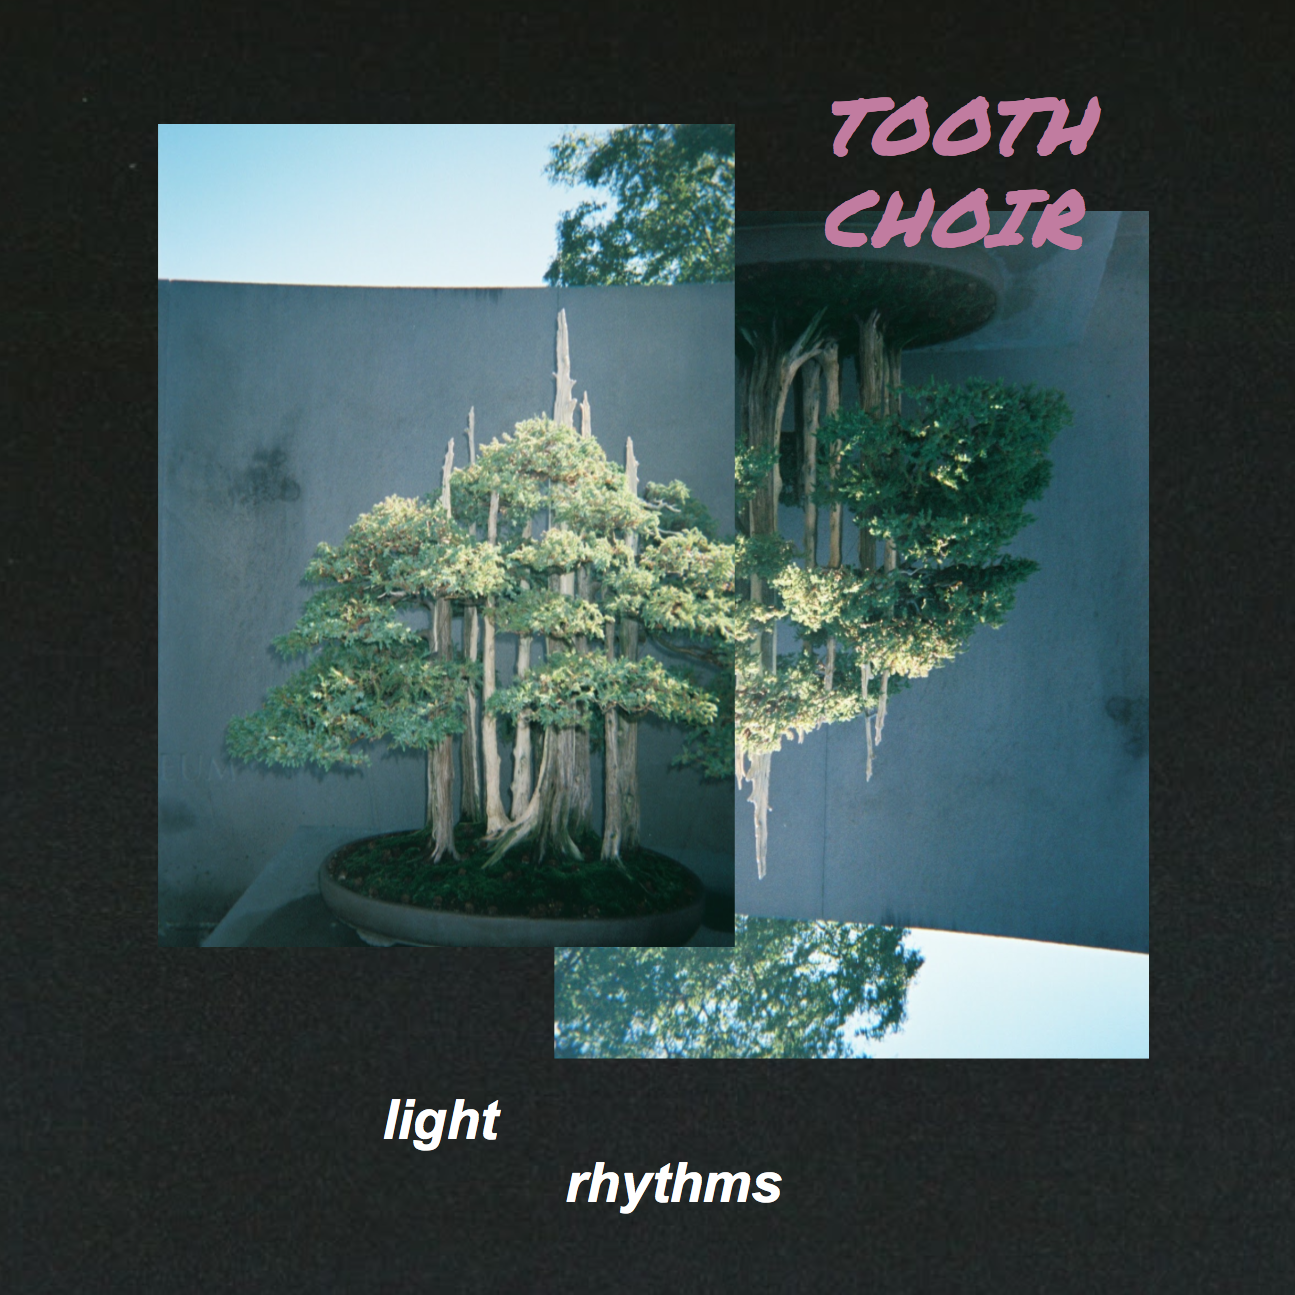 Tooth Choir - Light Rhythms *SOLD OUT*